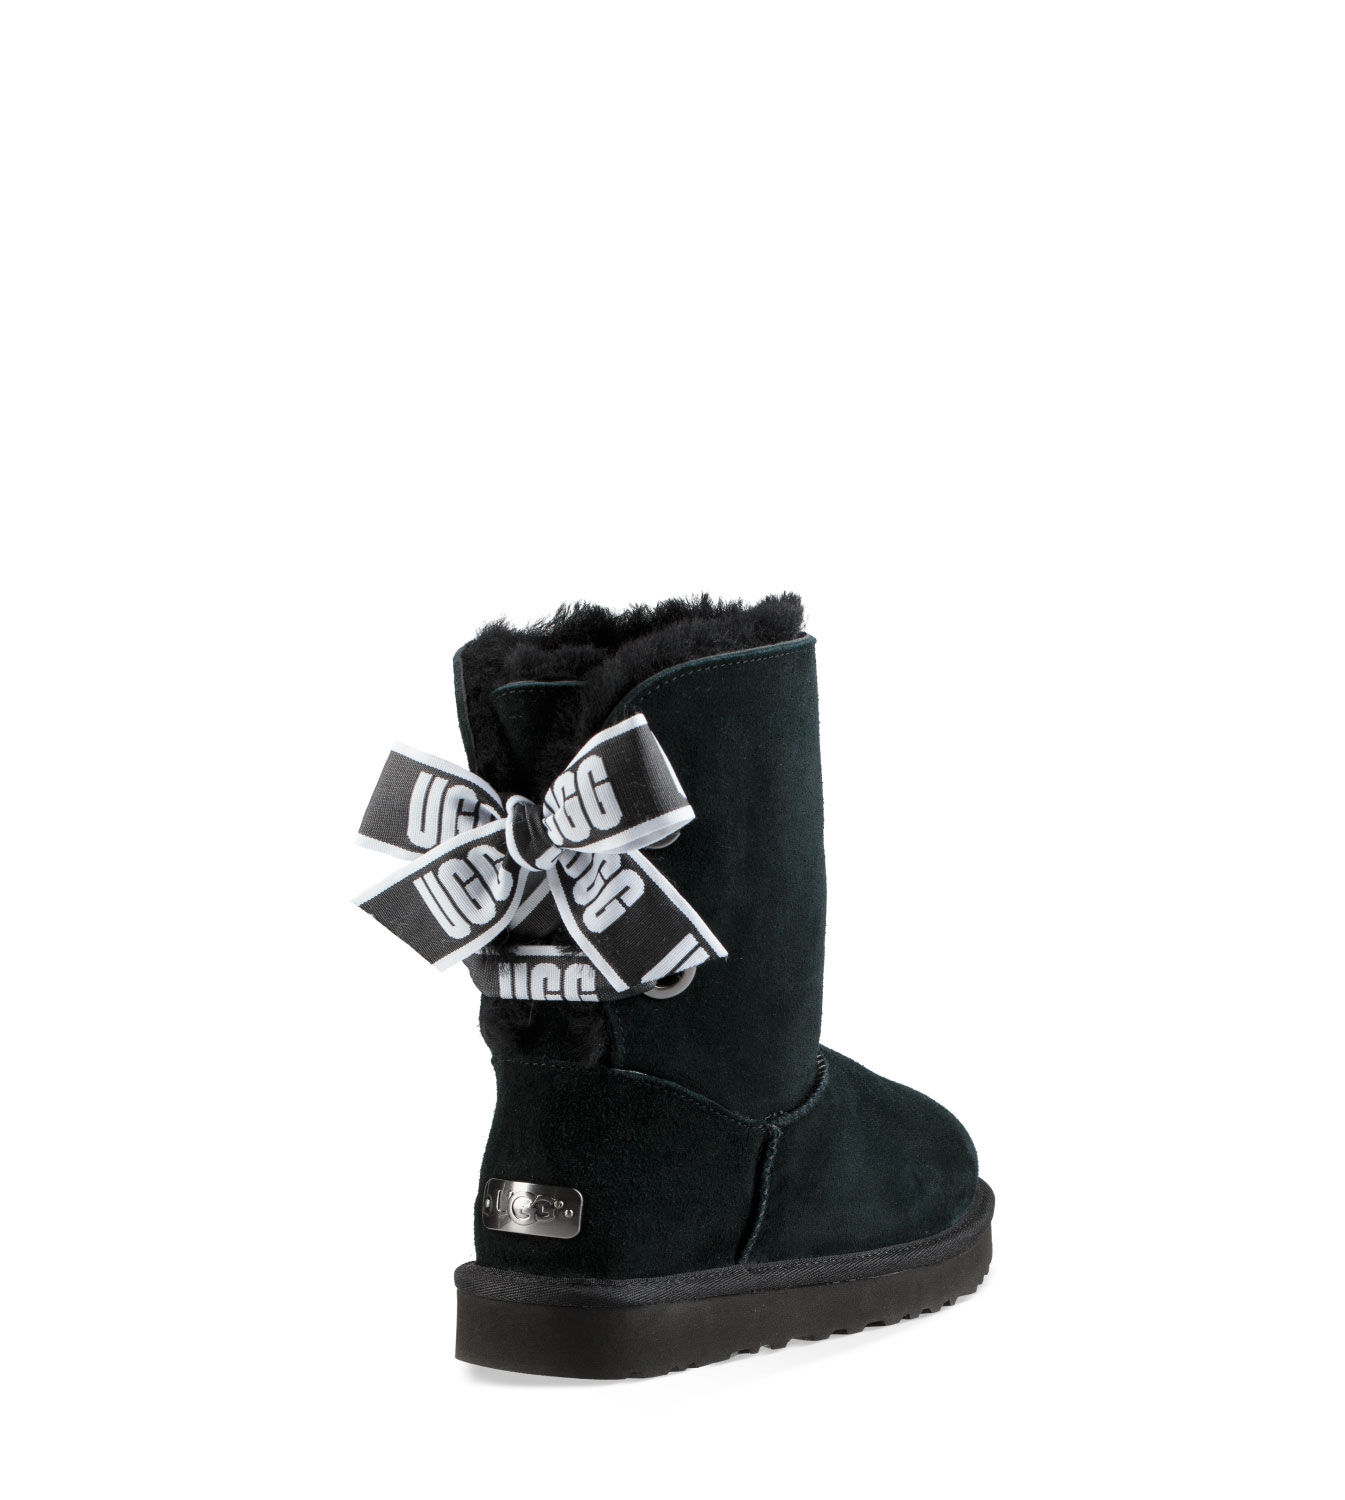 ugg canada boots collection boots for women ugg com ca rh ugg com